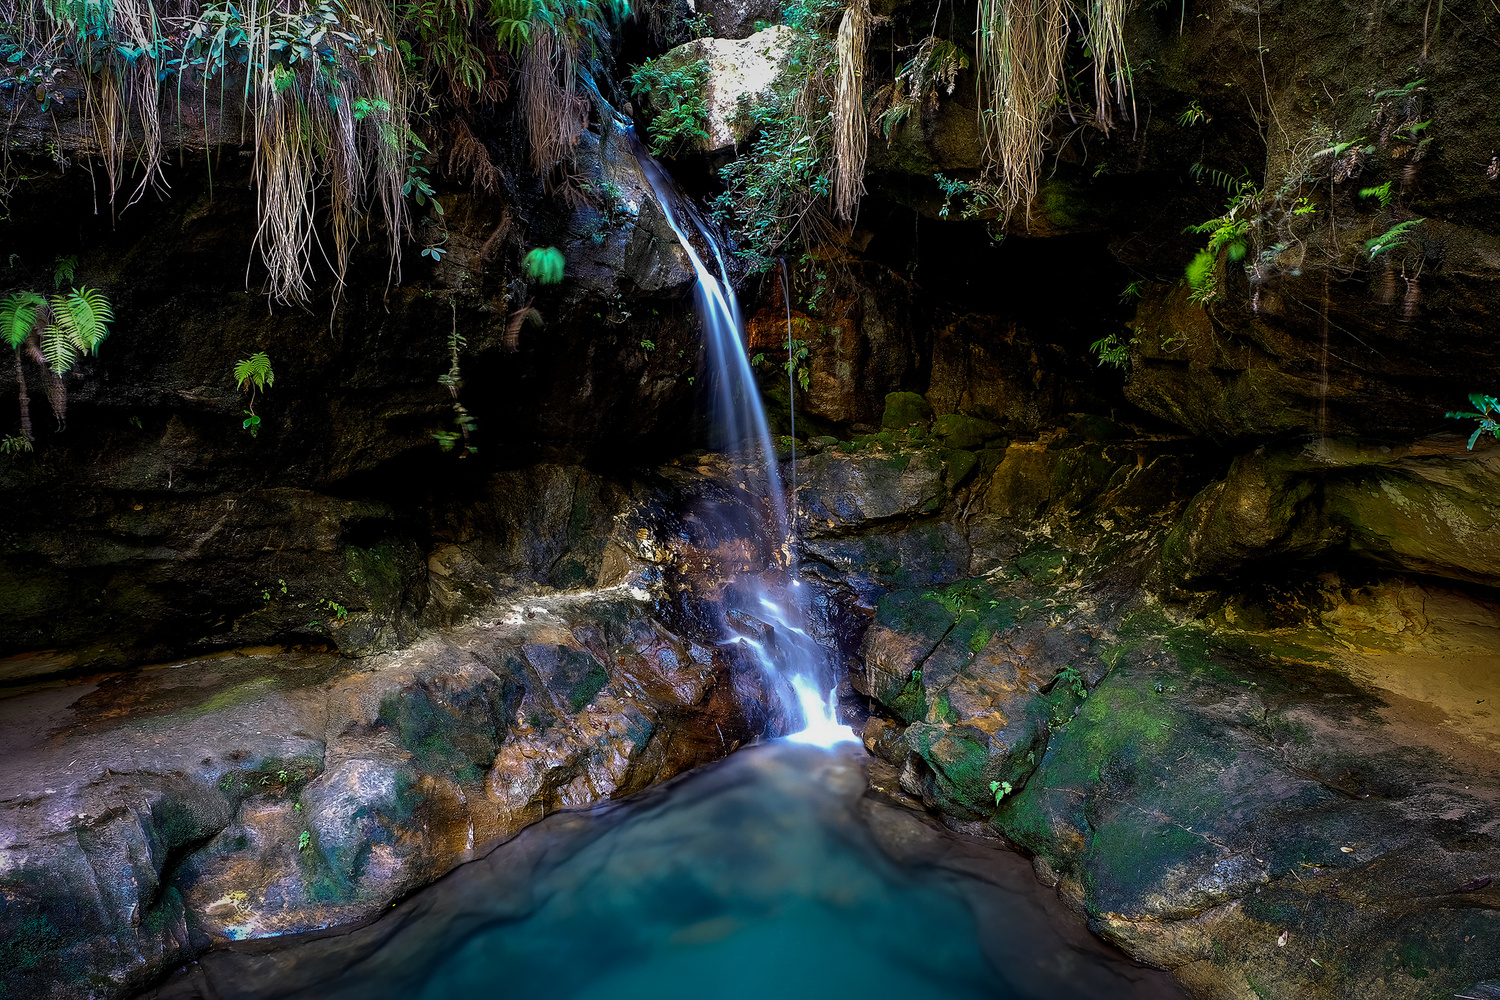 The Green Pool by Andrea Re Depaolini